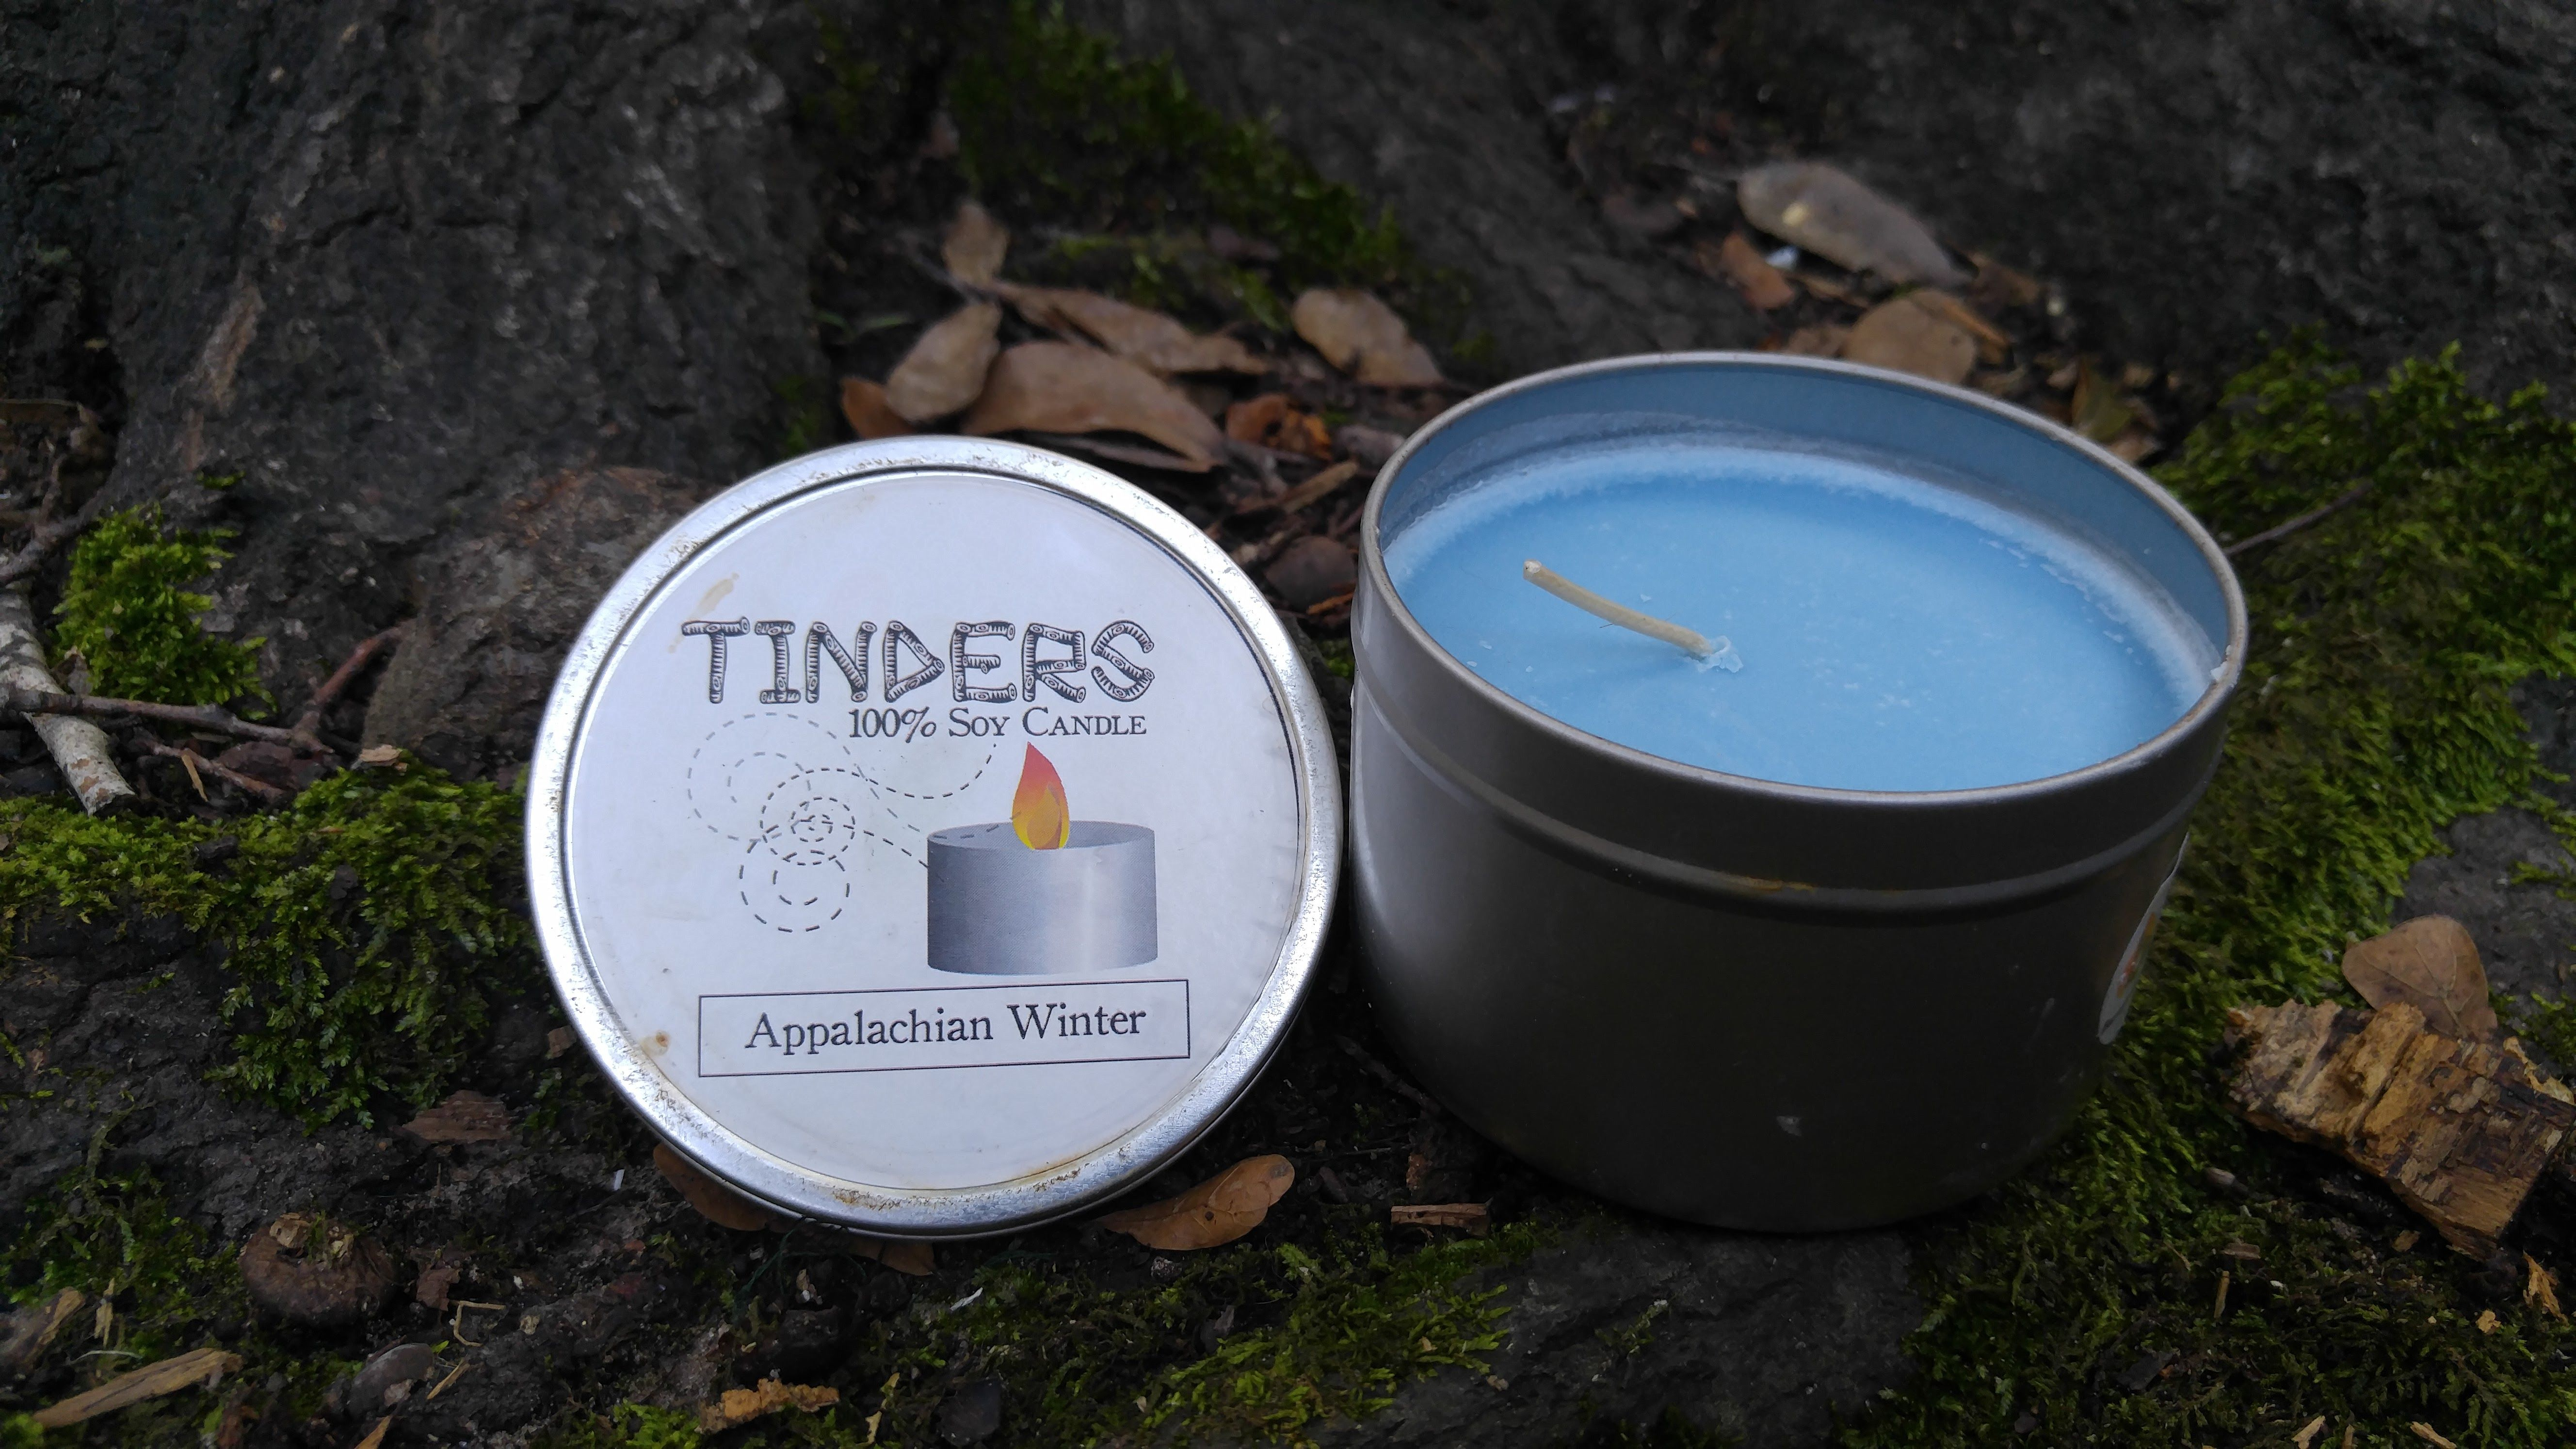 Appalachian Winter Tinders Soy Candle